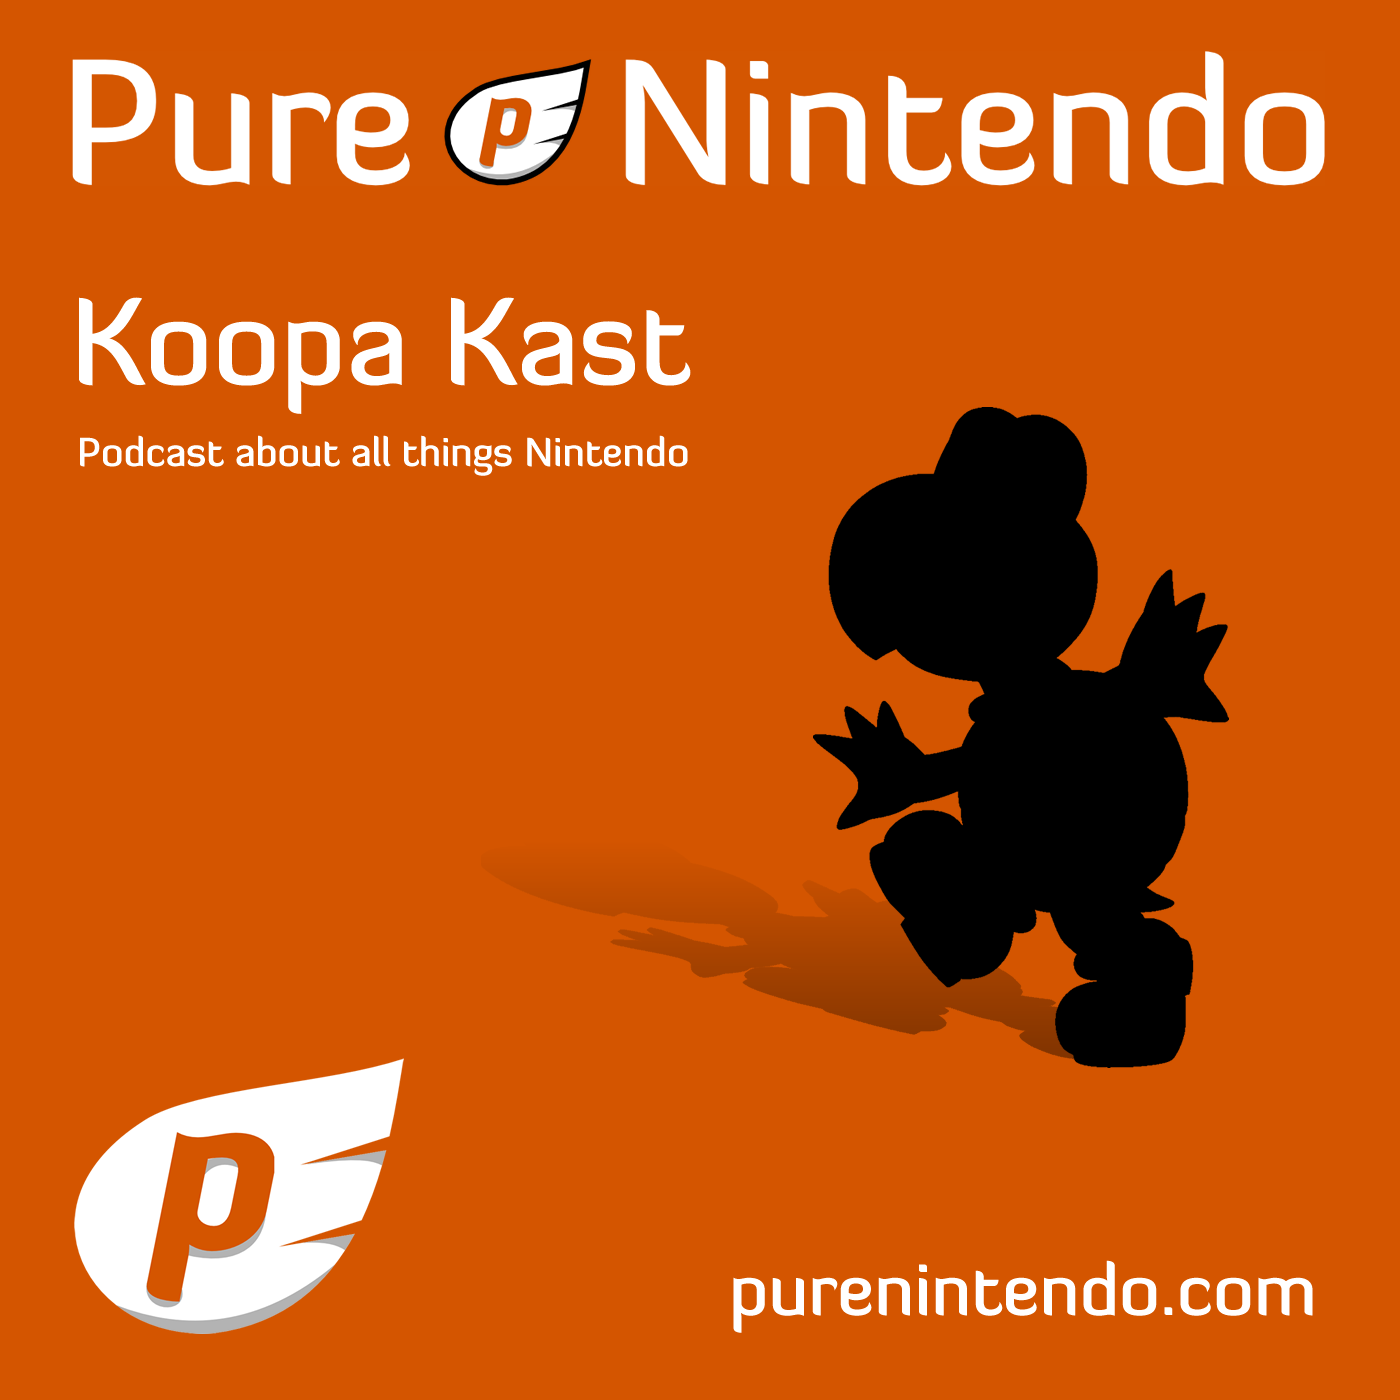 Koopa Kast #44 Starting at 8:30PM EST